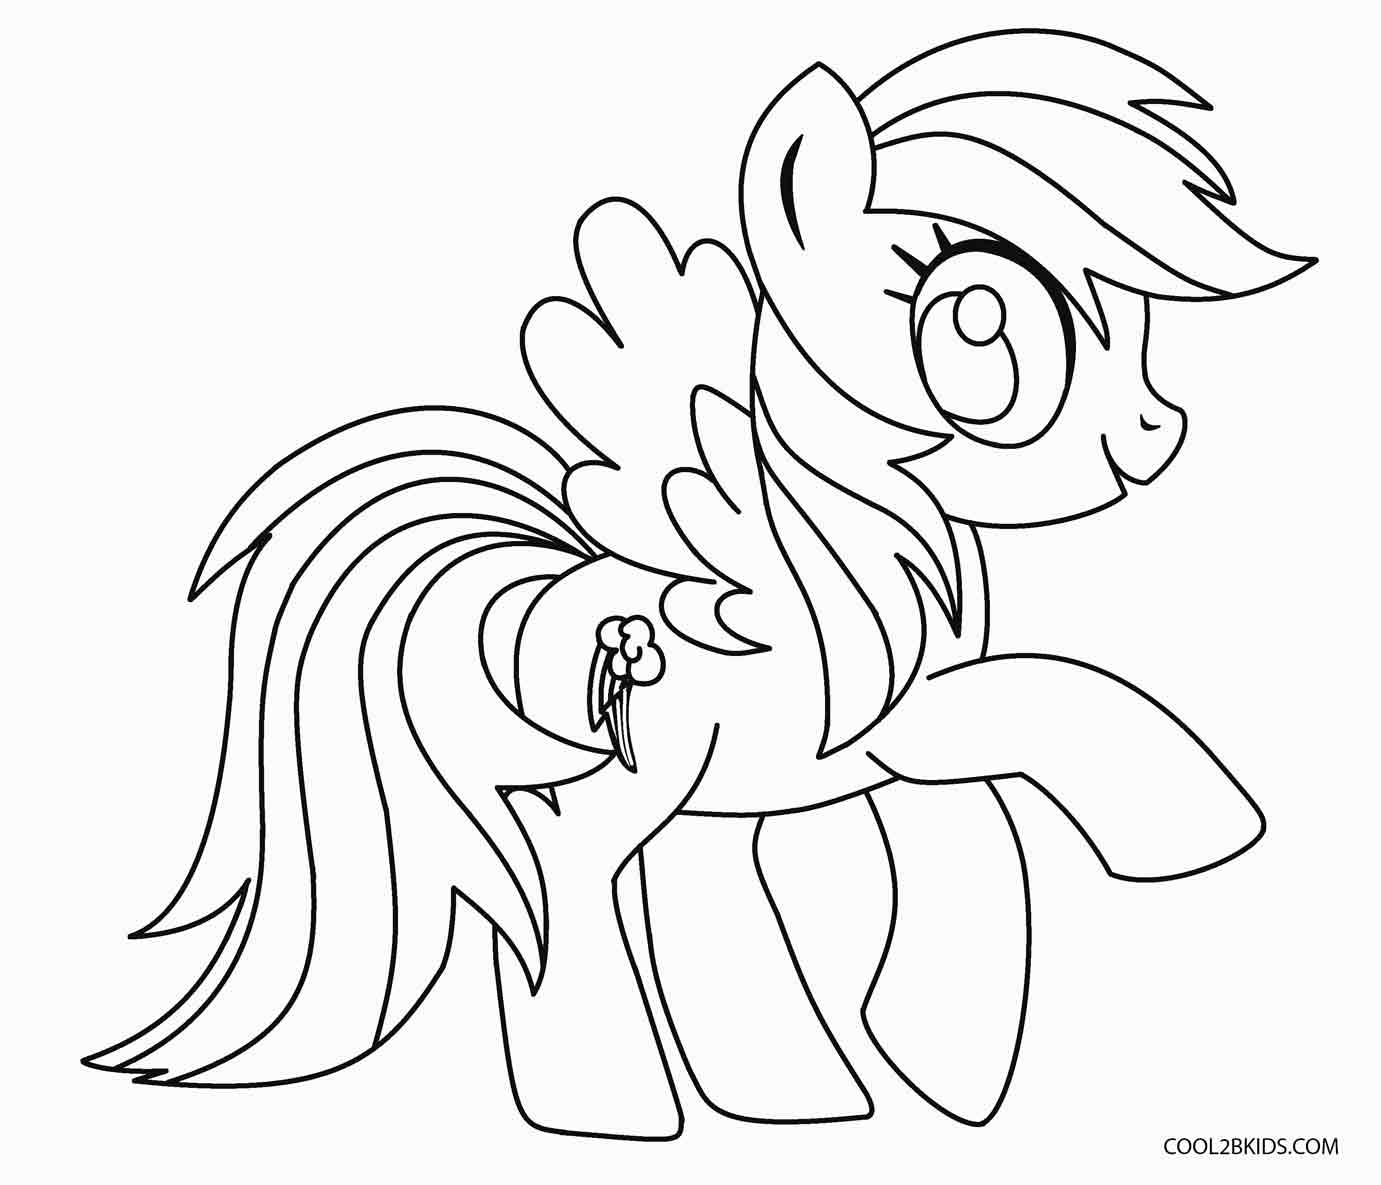 my little pony coloring images free printable my little pony coloring pages for kids little coloring pony images my